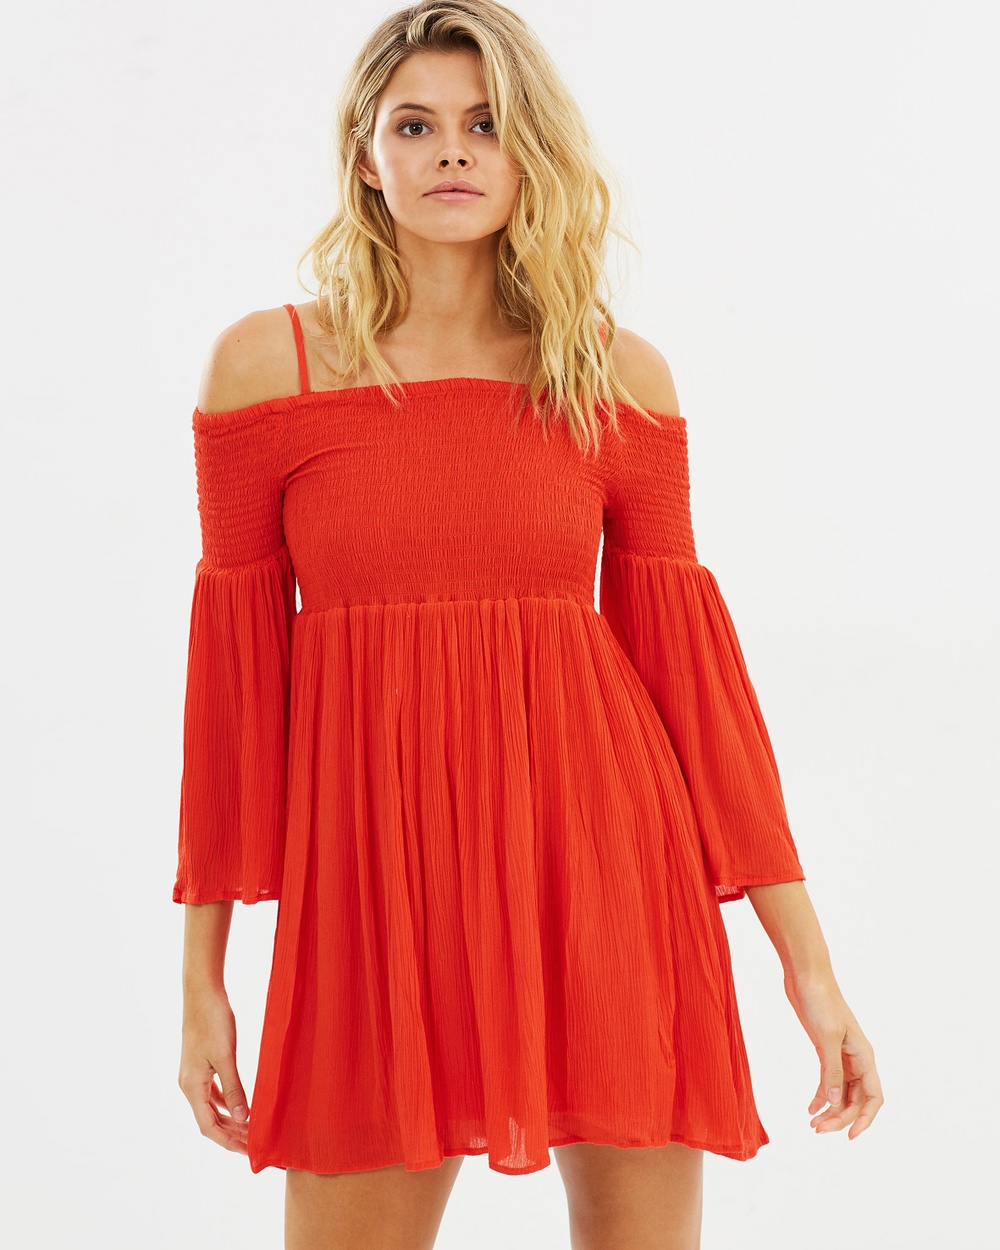 Sass Sofi Shirred Bust Dress Dresses Fire Sofi Shirred Bust Dress